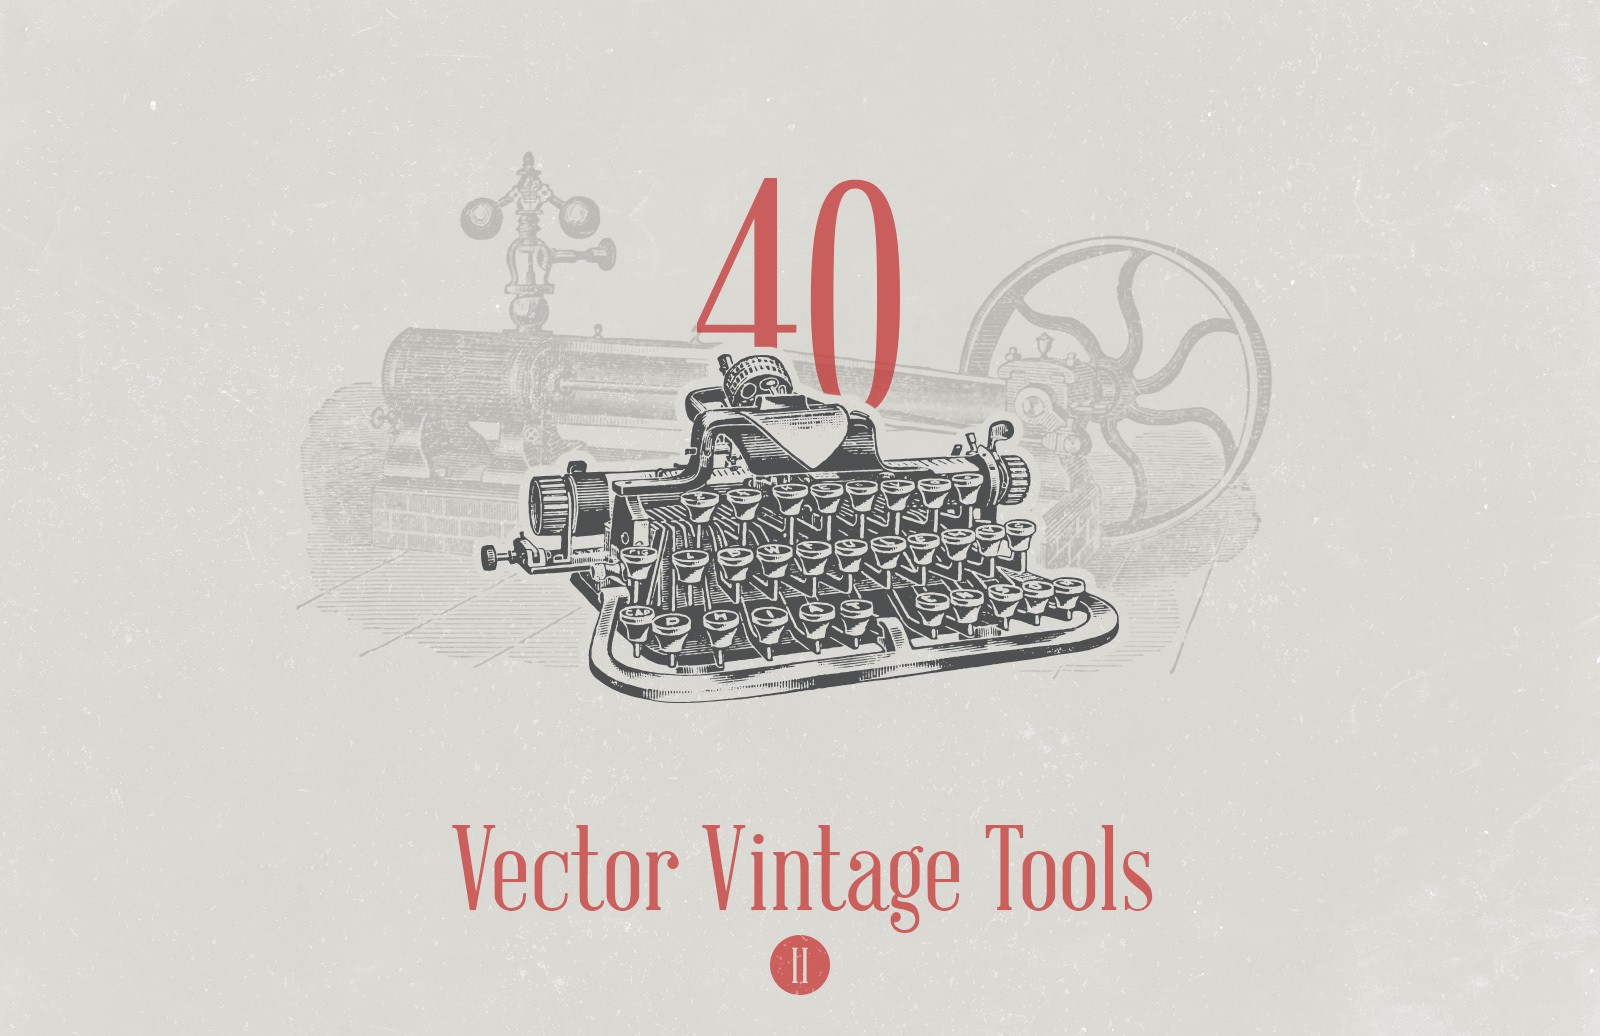 Vector Vintage Tool Illustrations - Vol. 2